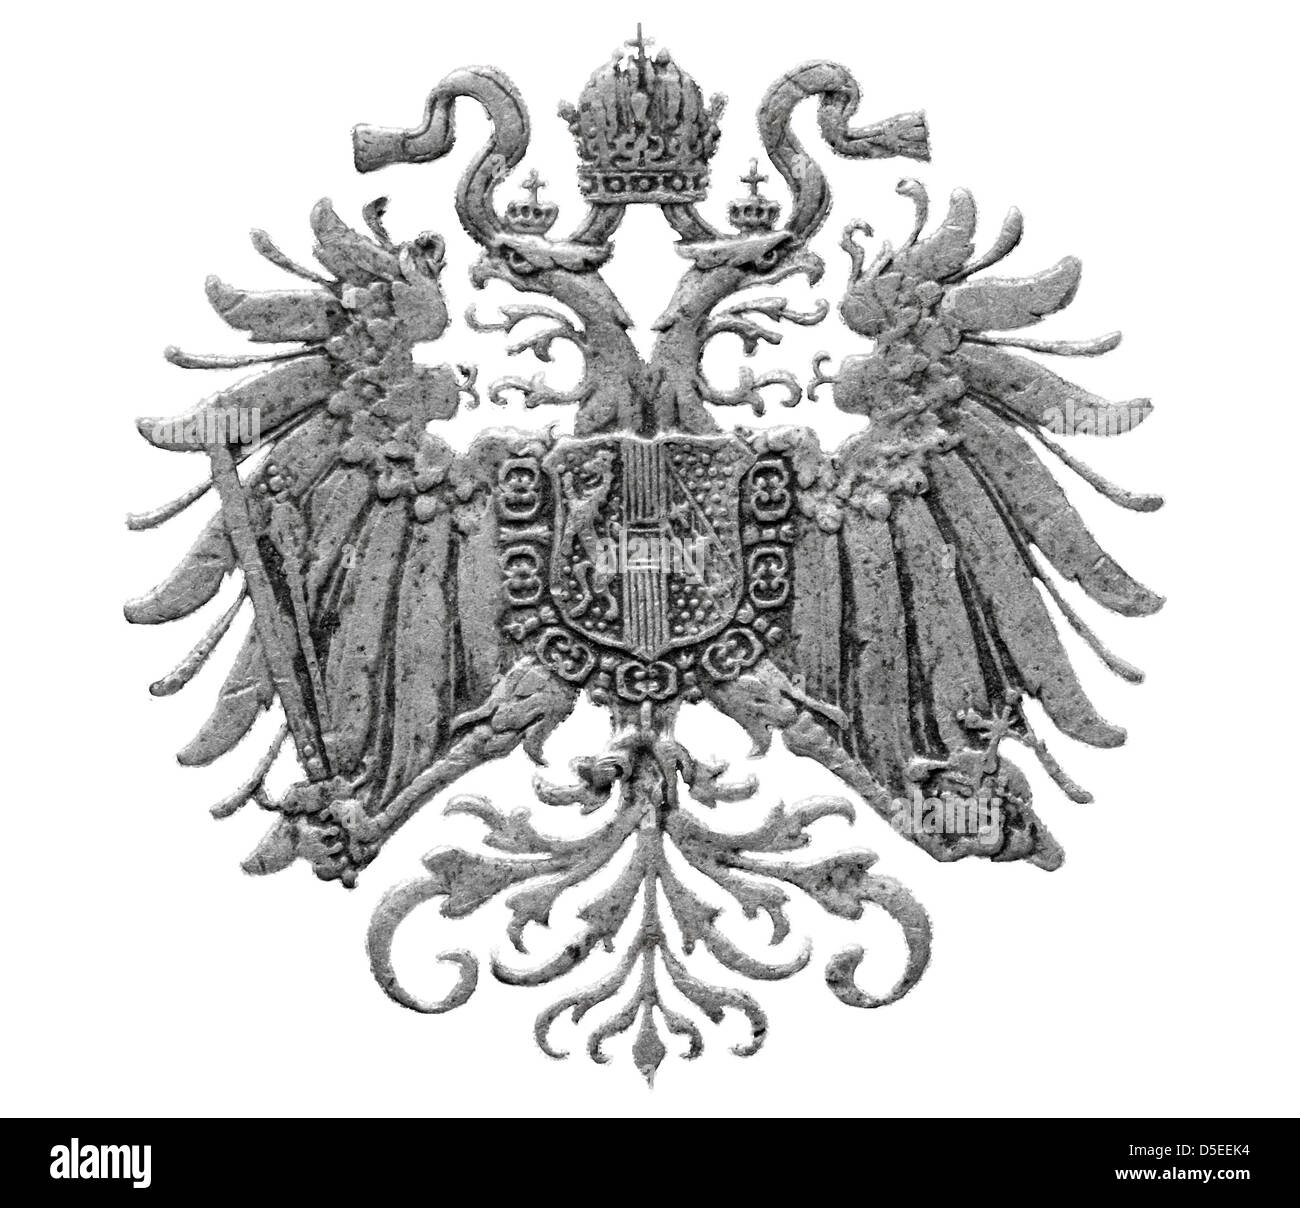 Coat of arms of Austro-Hungarian Empire from 10 Heller coin, Austria, 1915, on white background - Stock Image